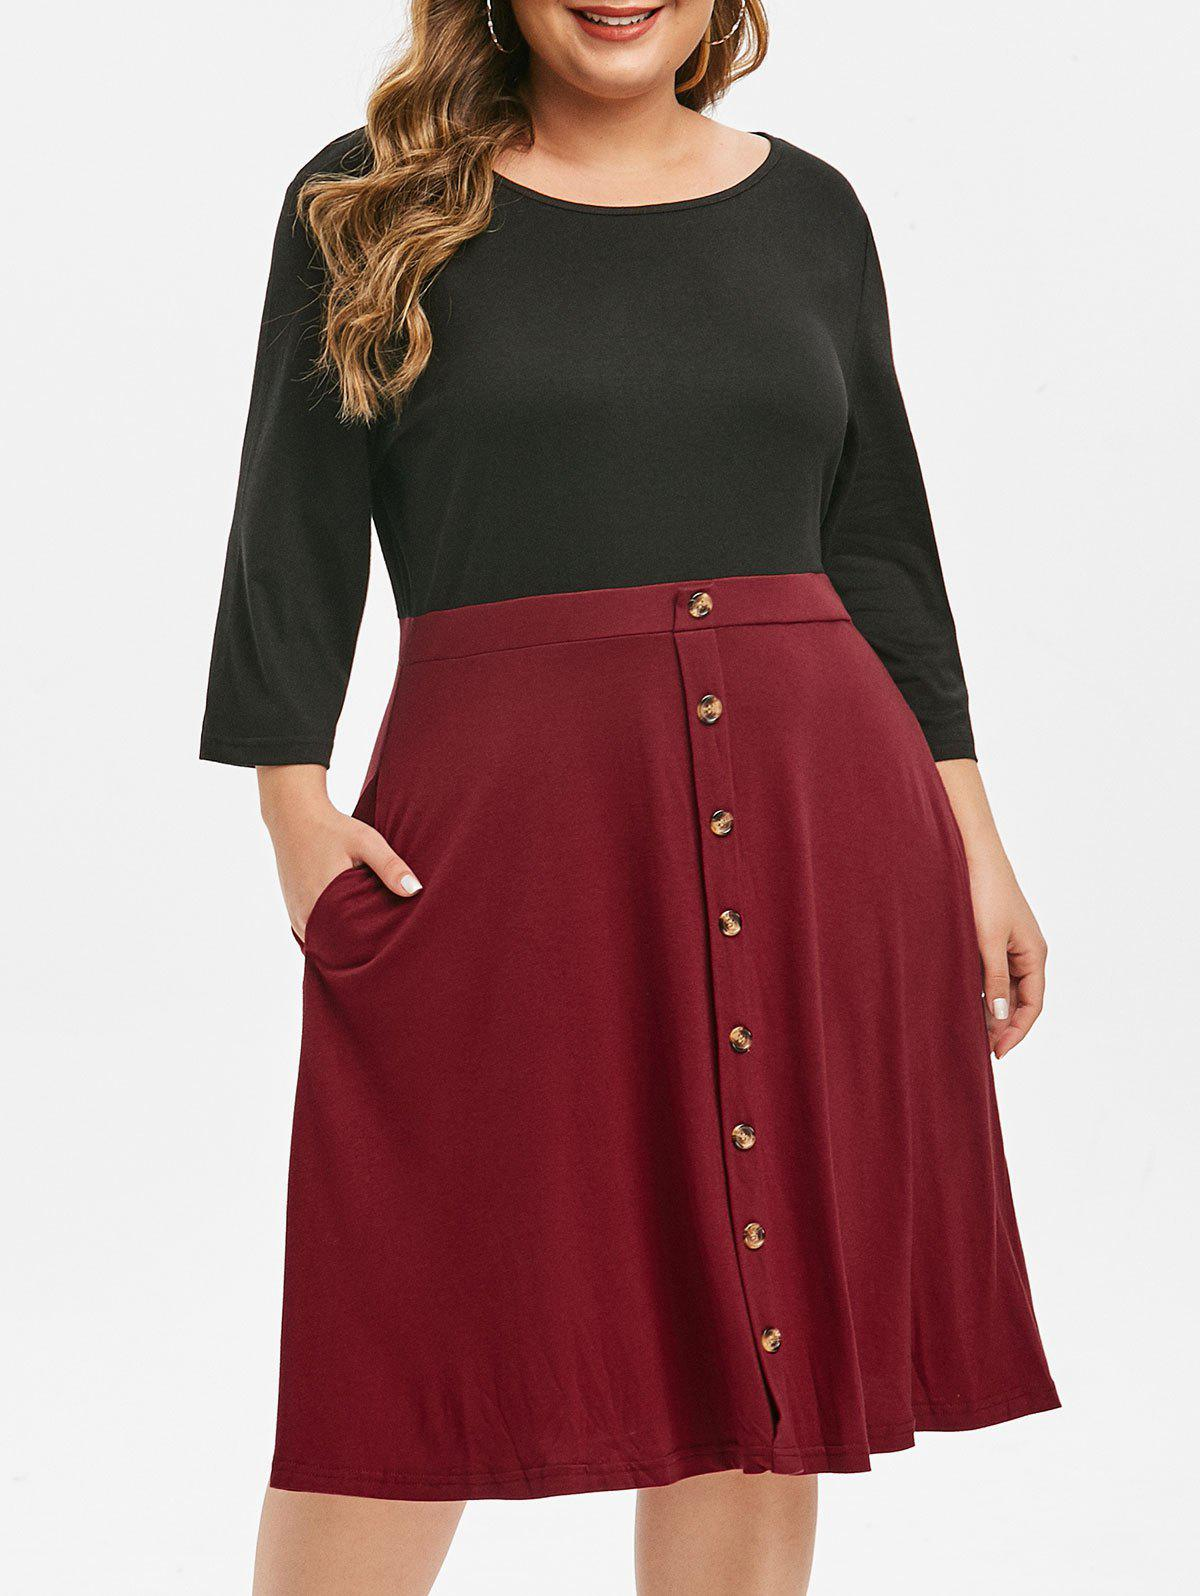 Plus Size Two Tone Button Embellished Dress - RED WINE 4X